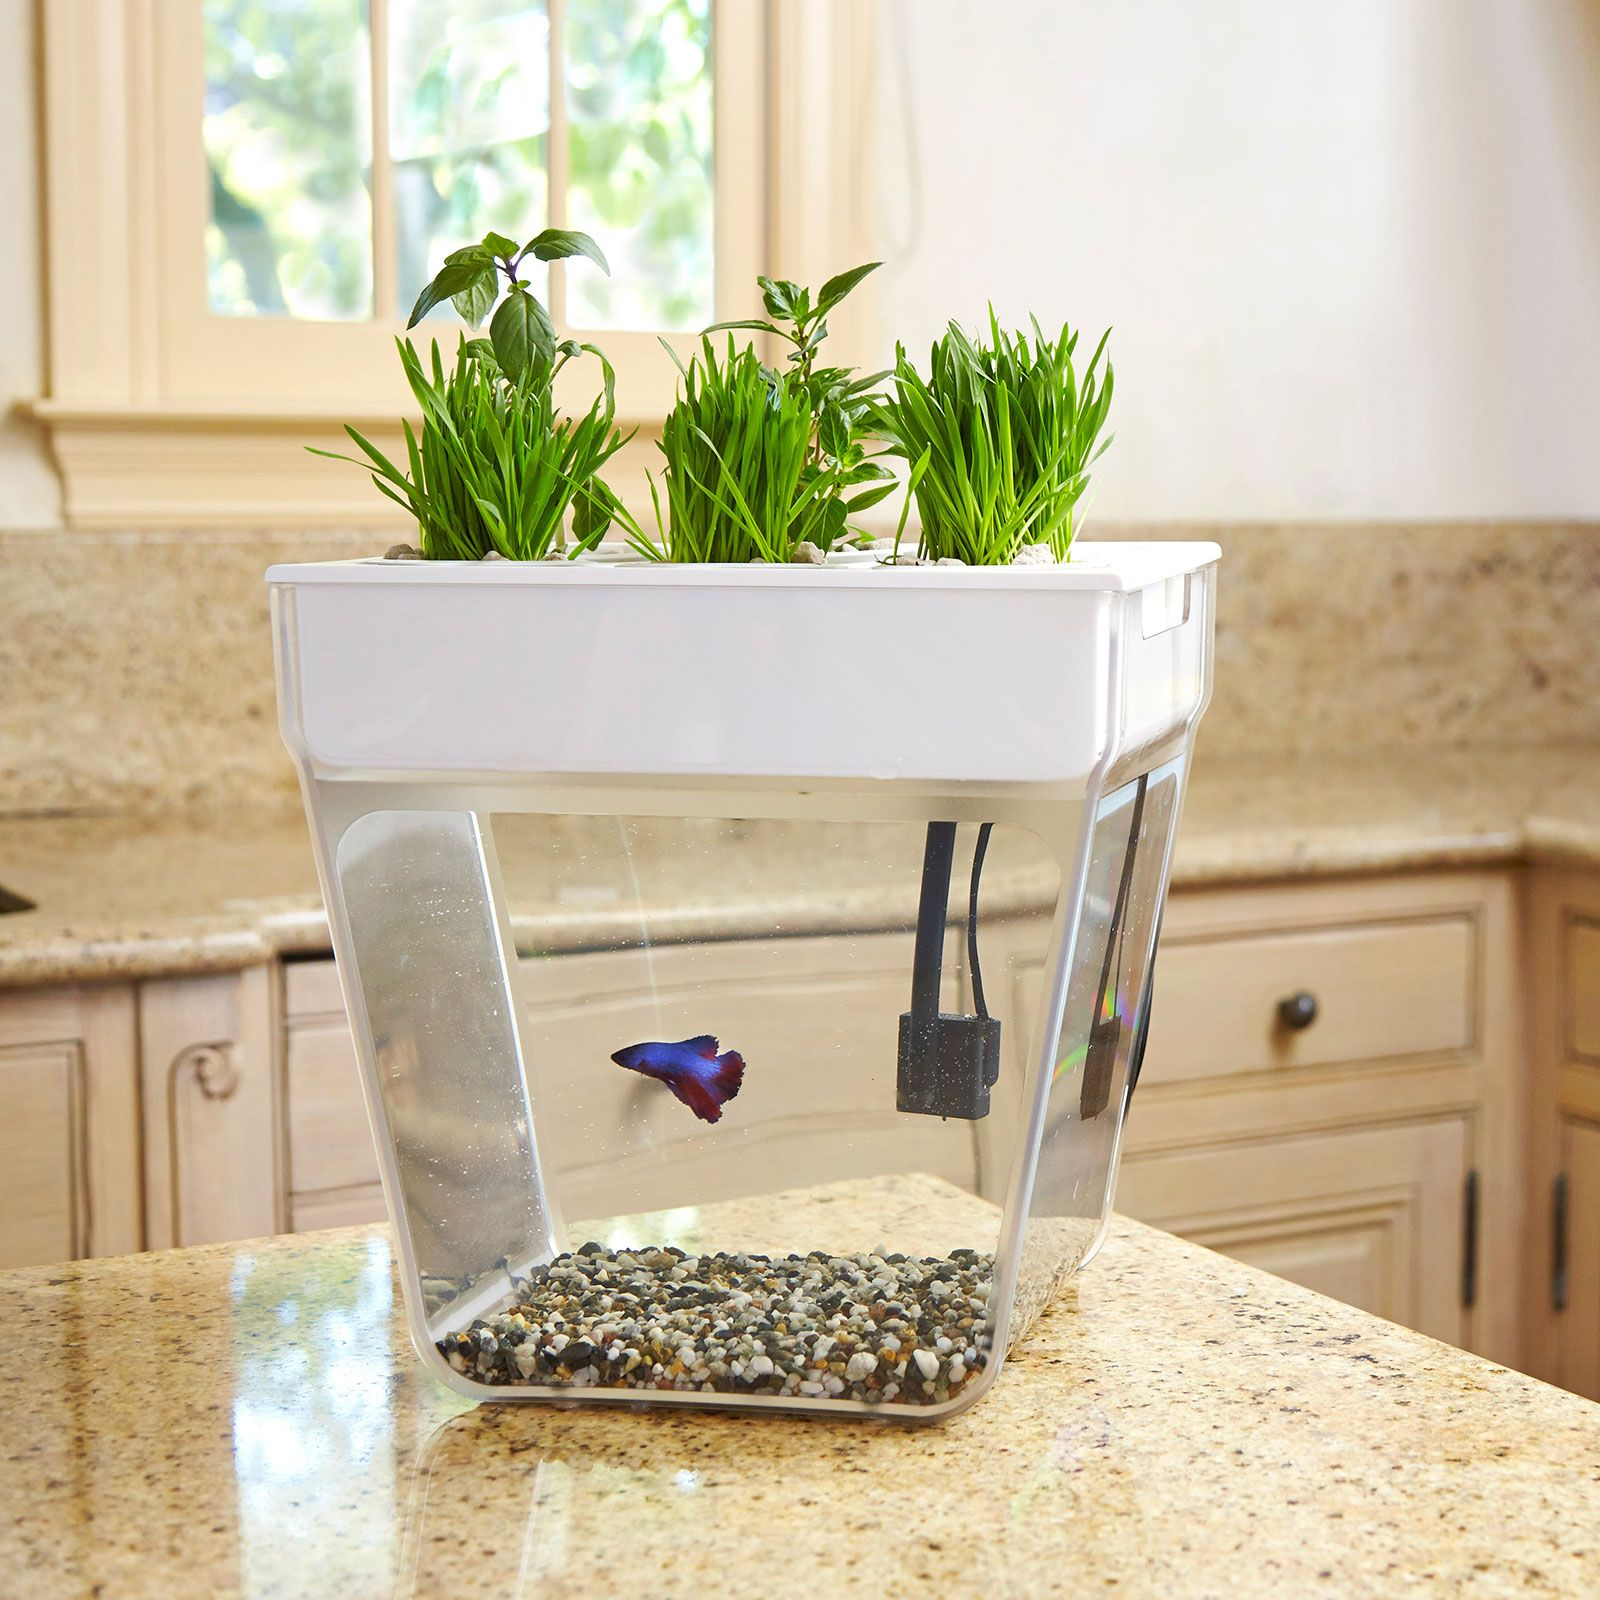 Hydroponic garden fish bowl Grow your own small veggies and herbs